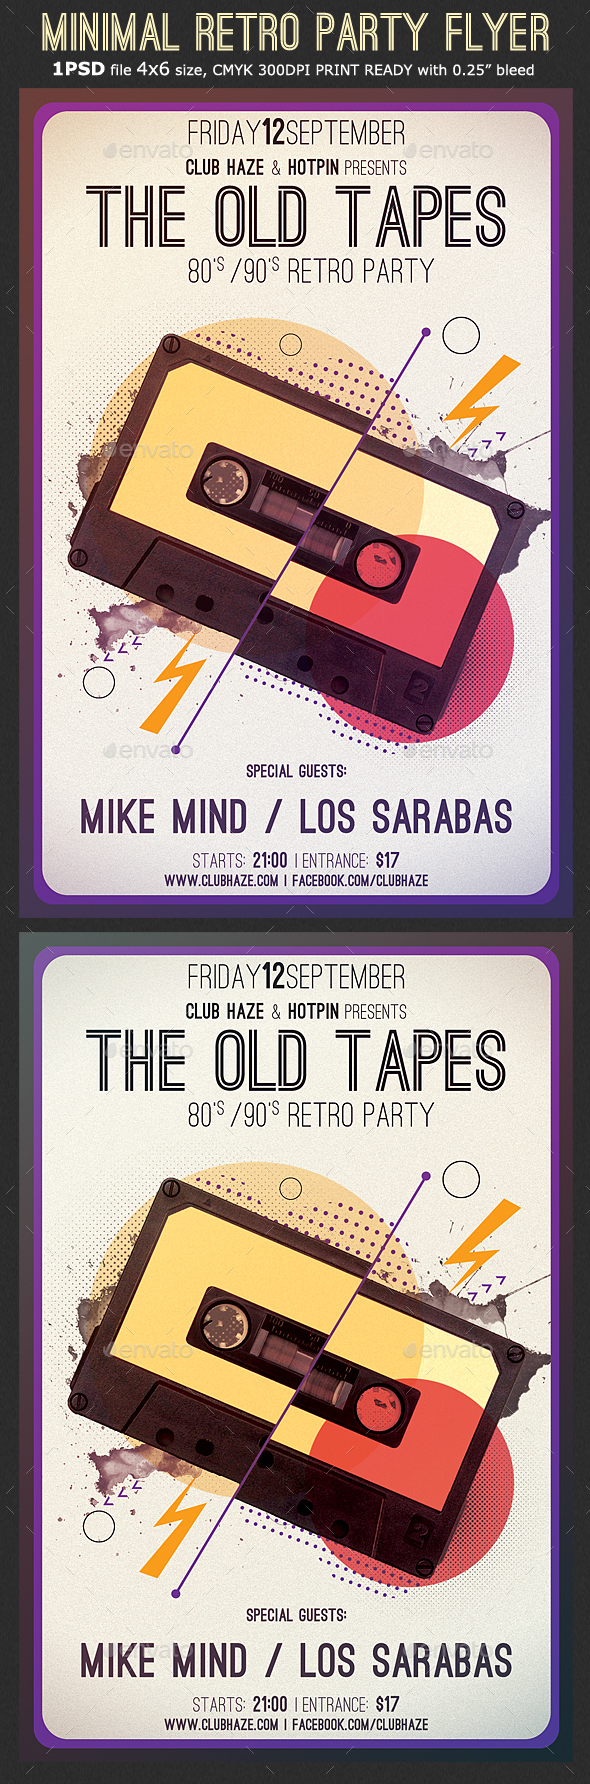 Minimal Retro Party Flyer Template - Clubs & Parties Events